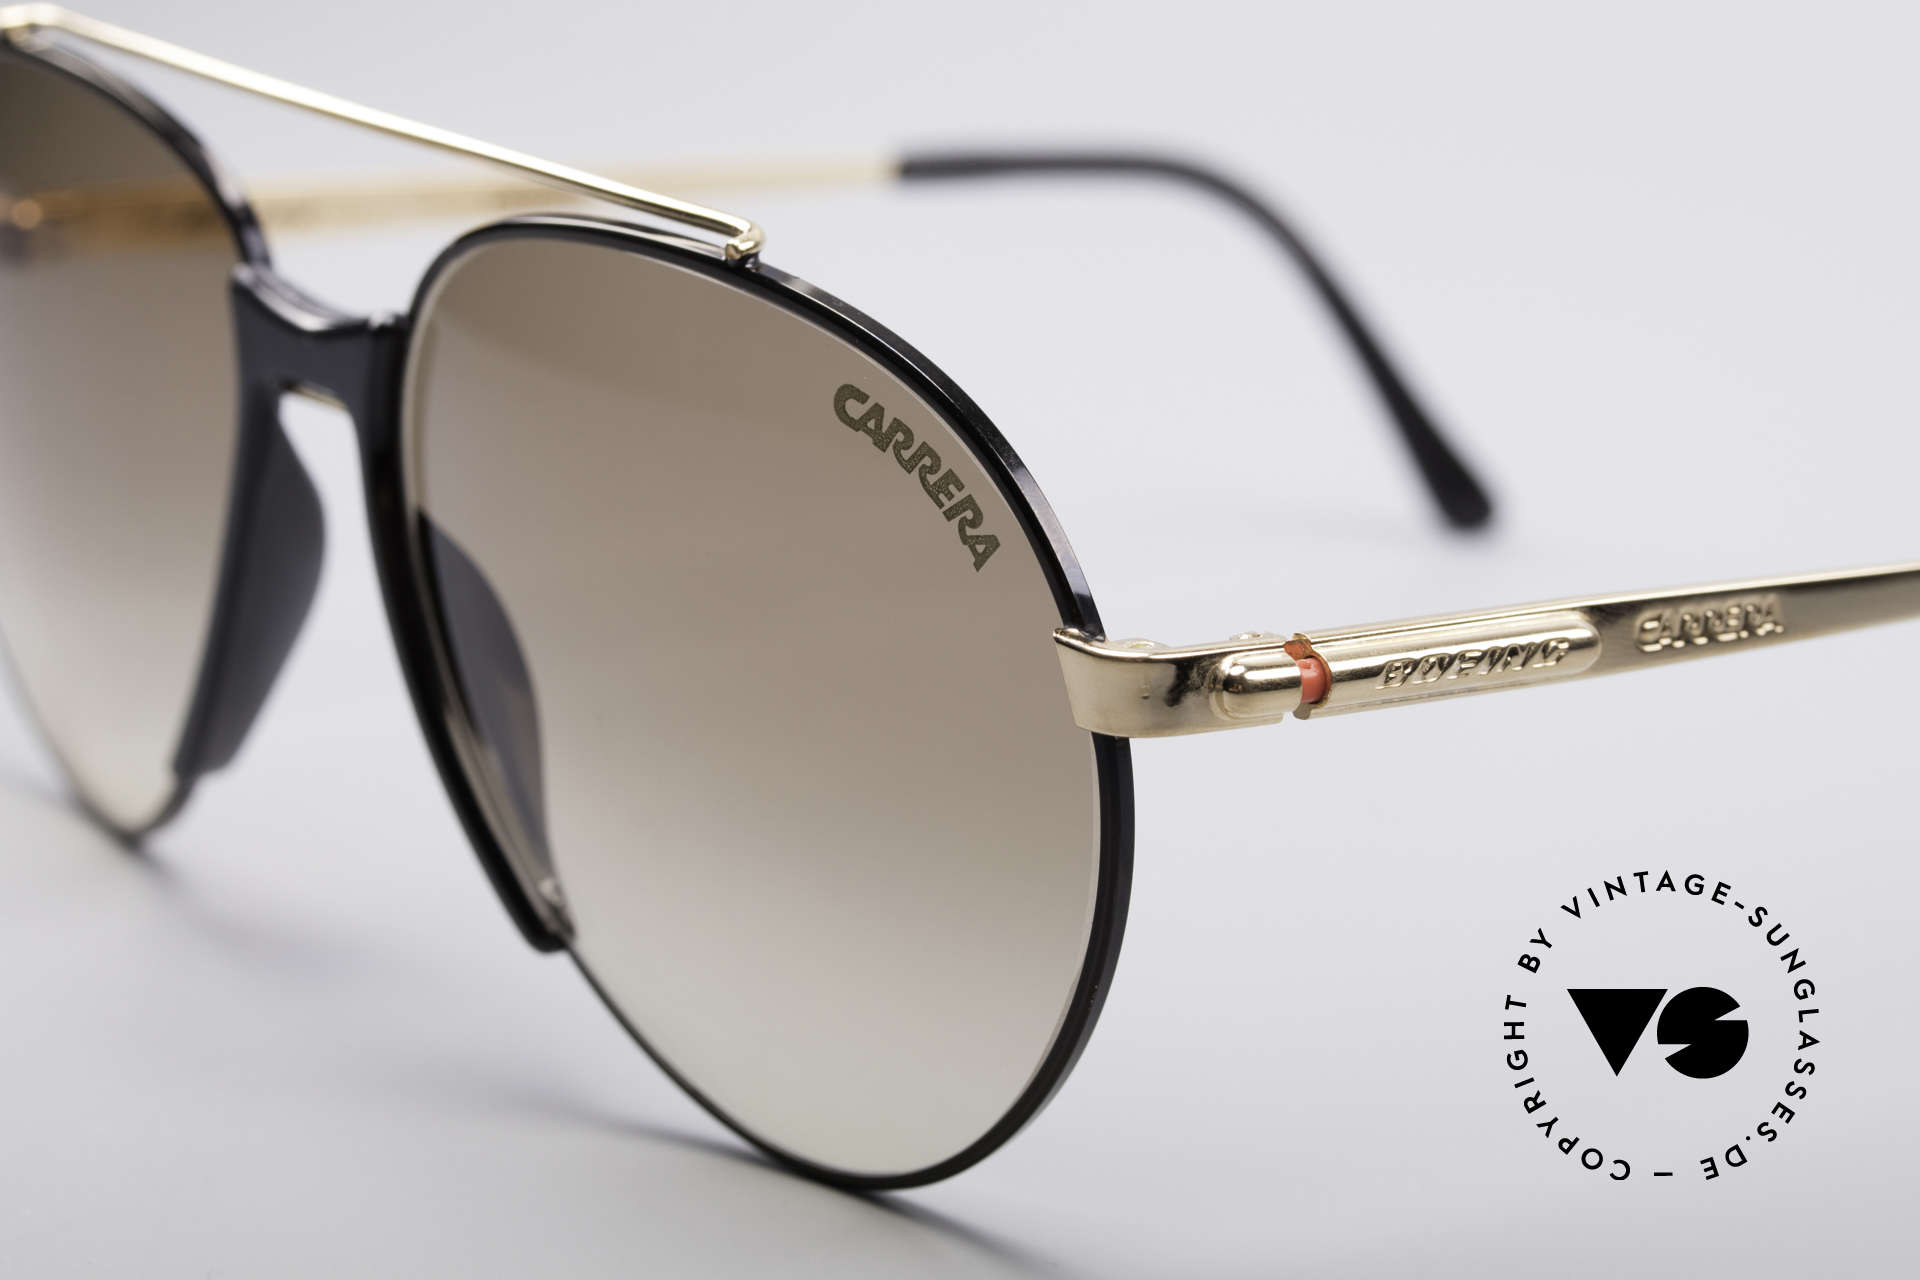 Boeing 5734 Old Glasses 80s Aviator Shades, high-end quality & simply precious (gold plated frame), Made for Men and Women